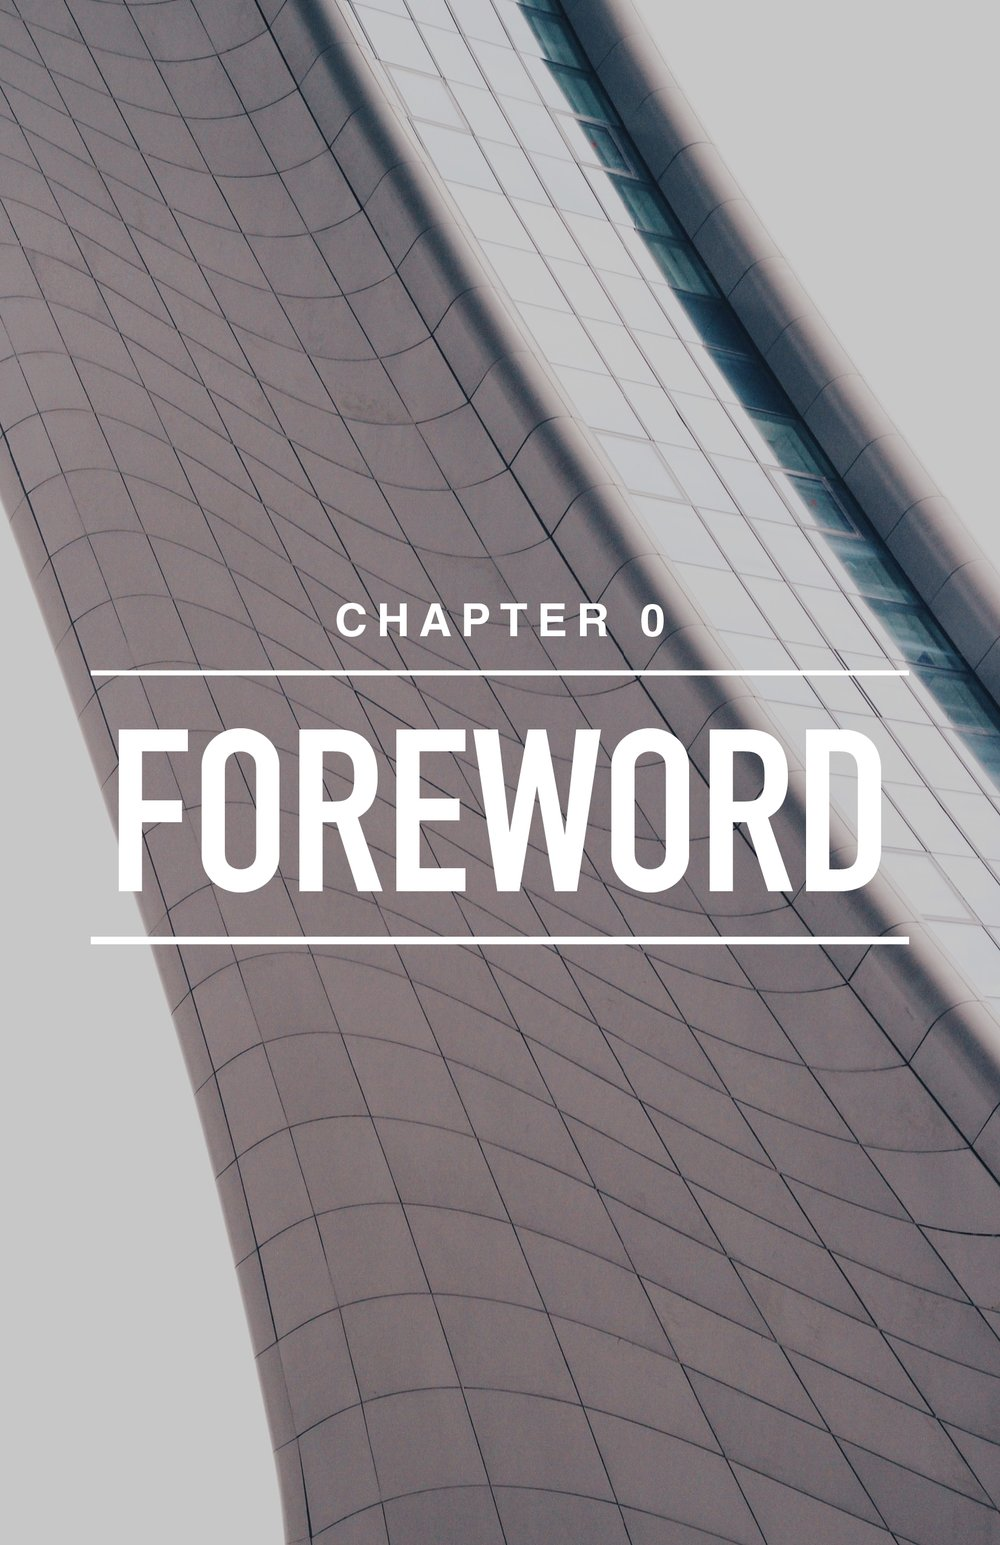 CH 0: FOREWORD